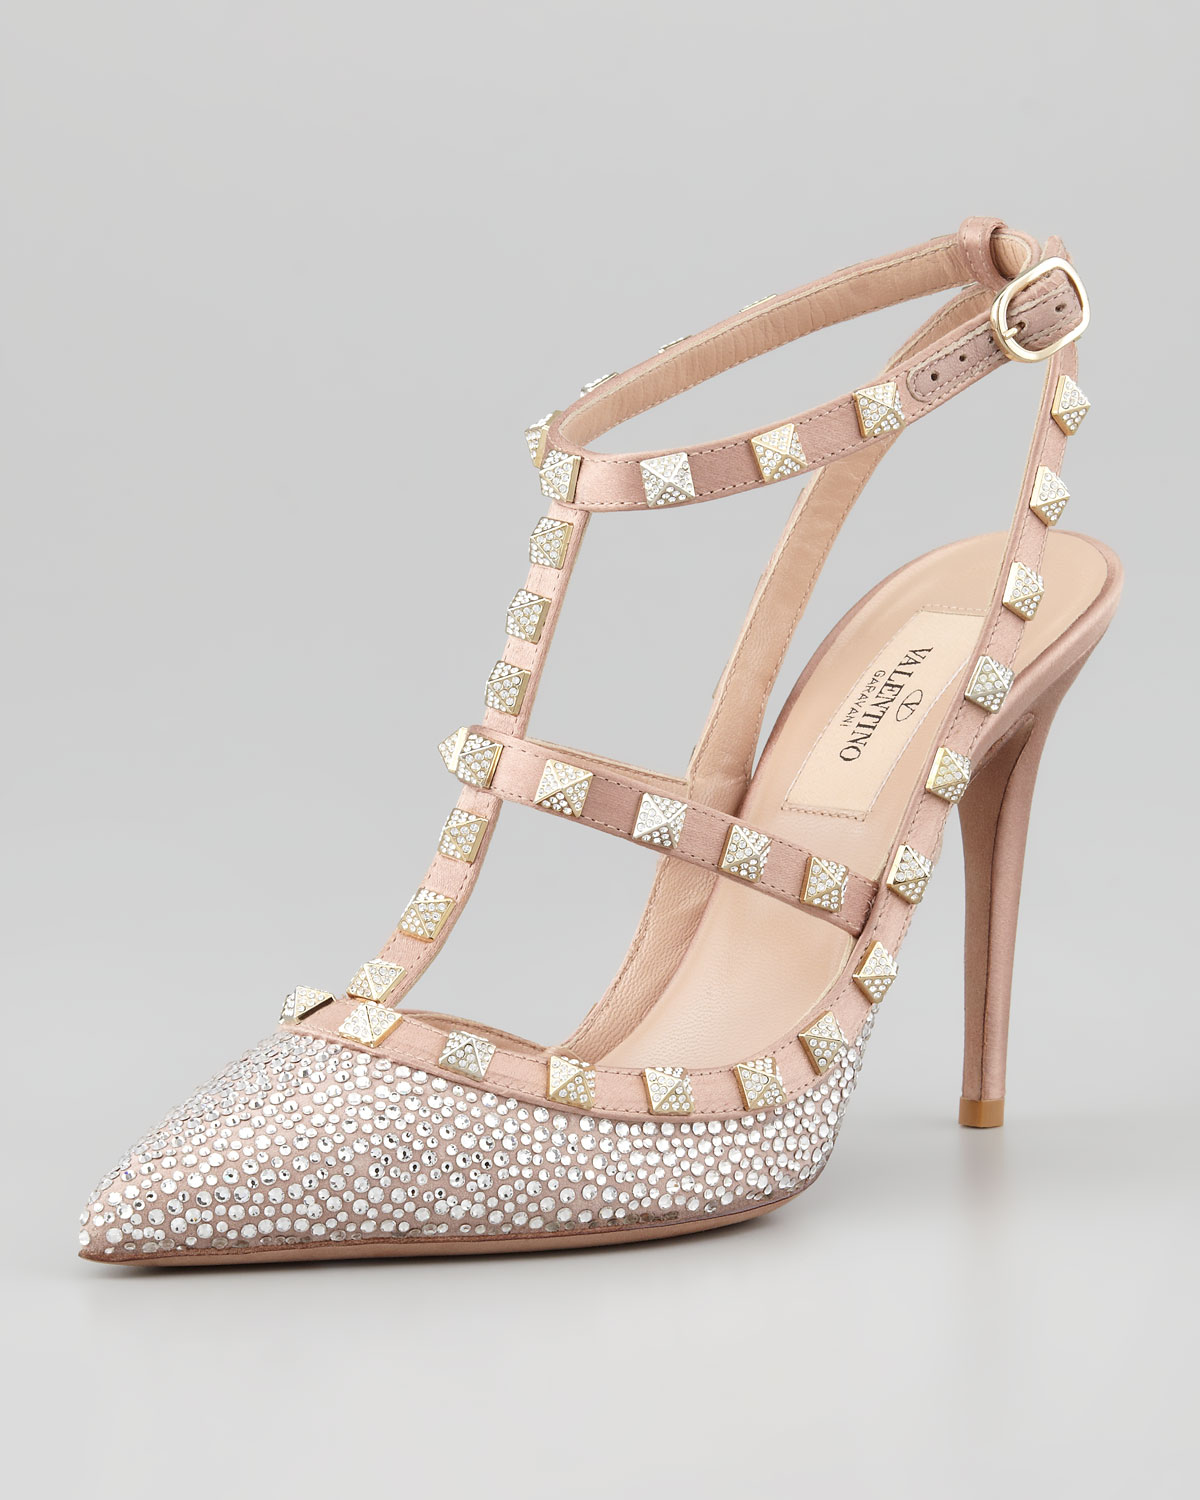 25 IMAGES OF VALENTINO SHOES YOU'LL LOVE! – I do Ghana